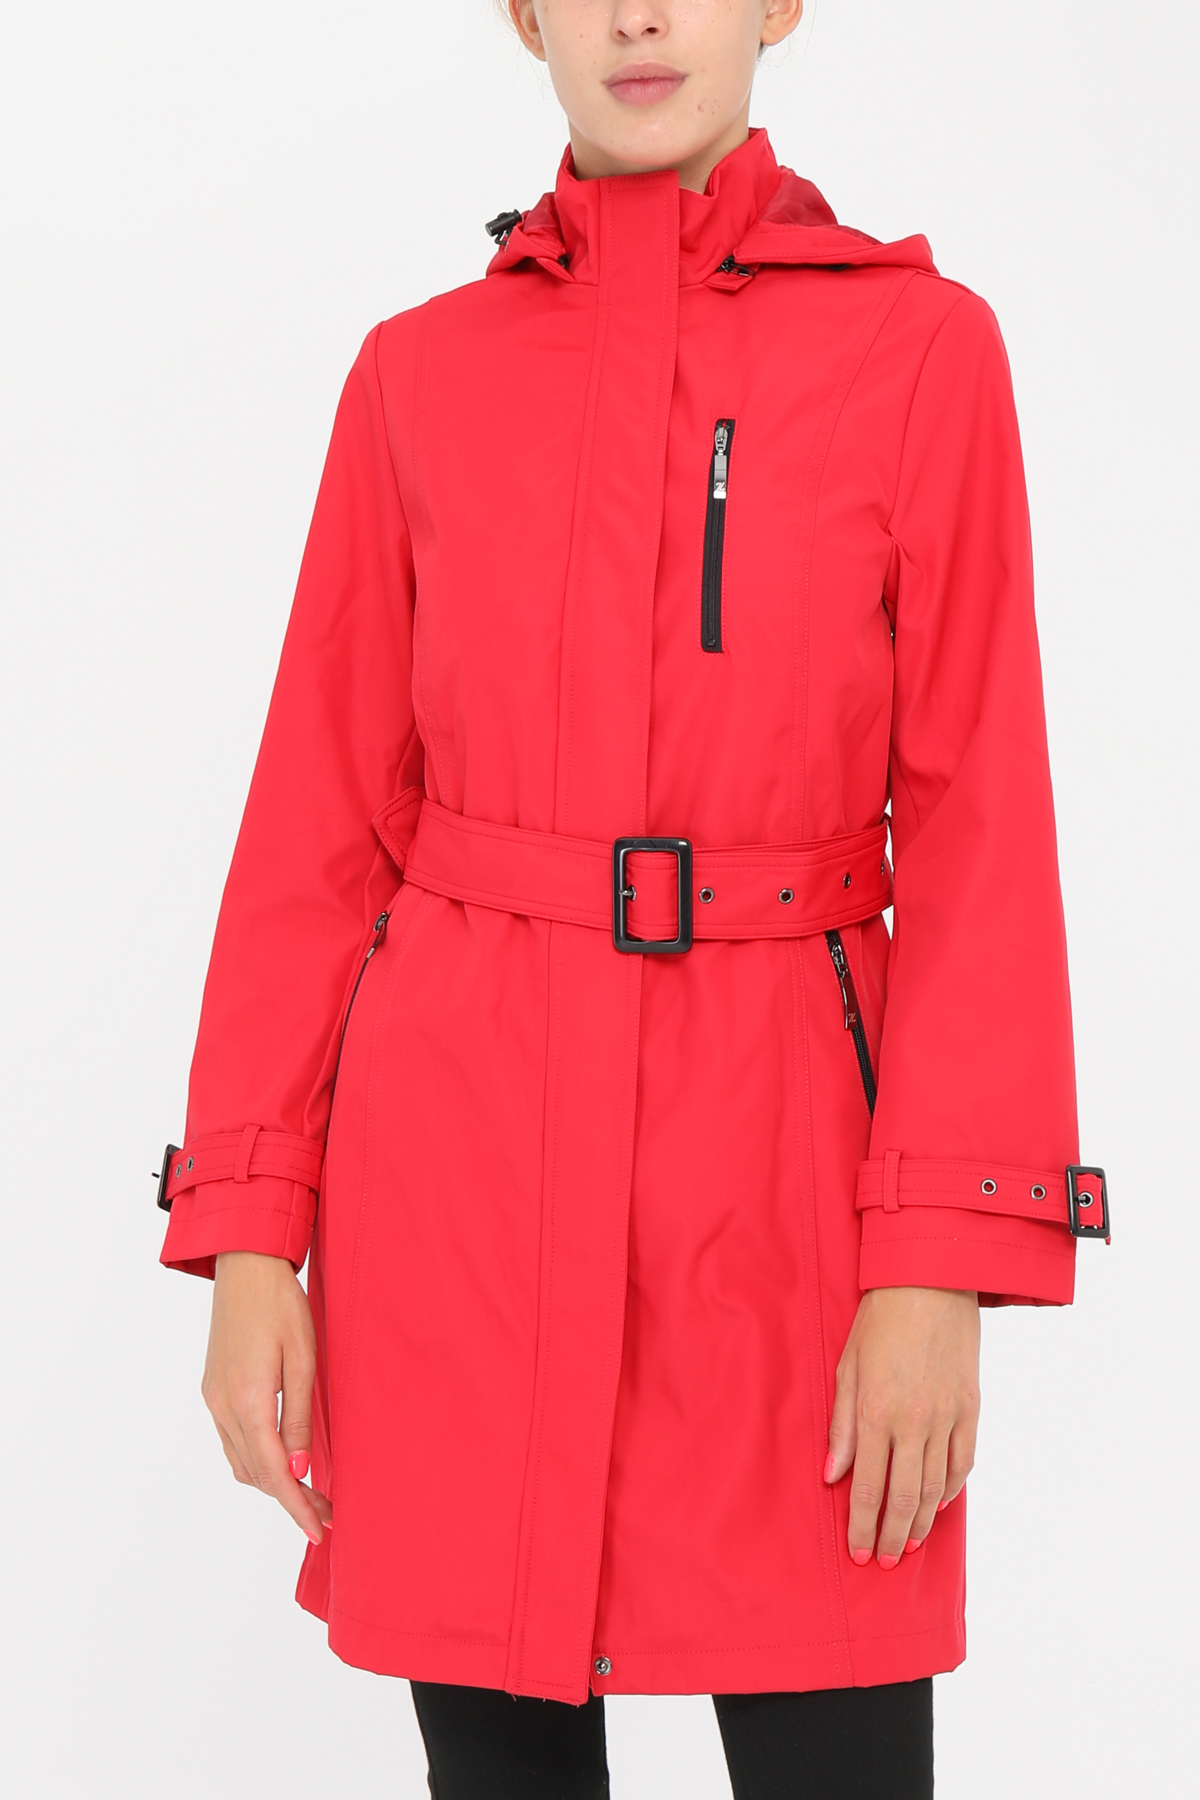 Manteaux Femme Rouge Zelia  1912F-BIS #c eFashion Paris